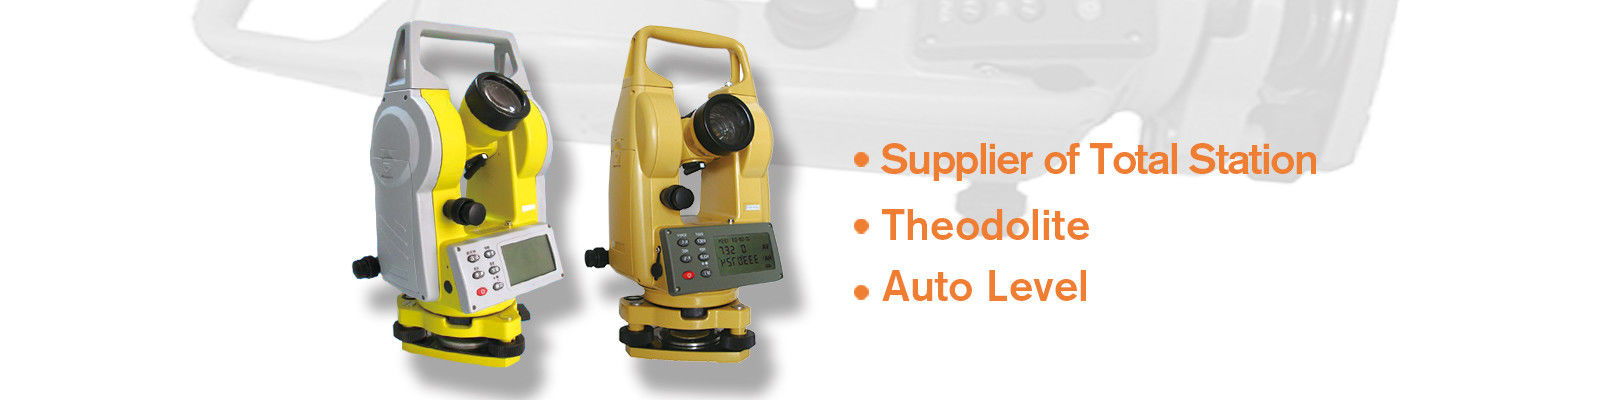 China best Parts Of Total Station on sales